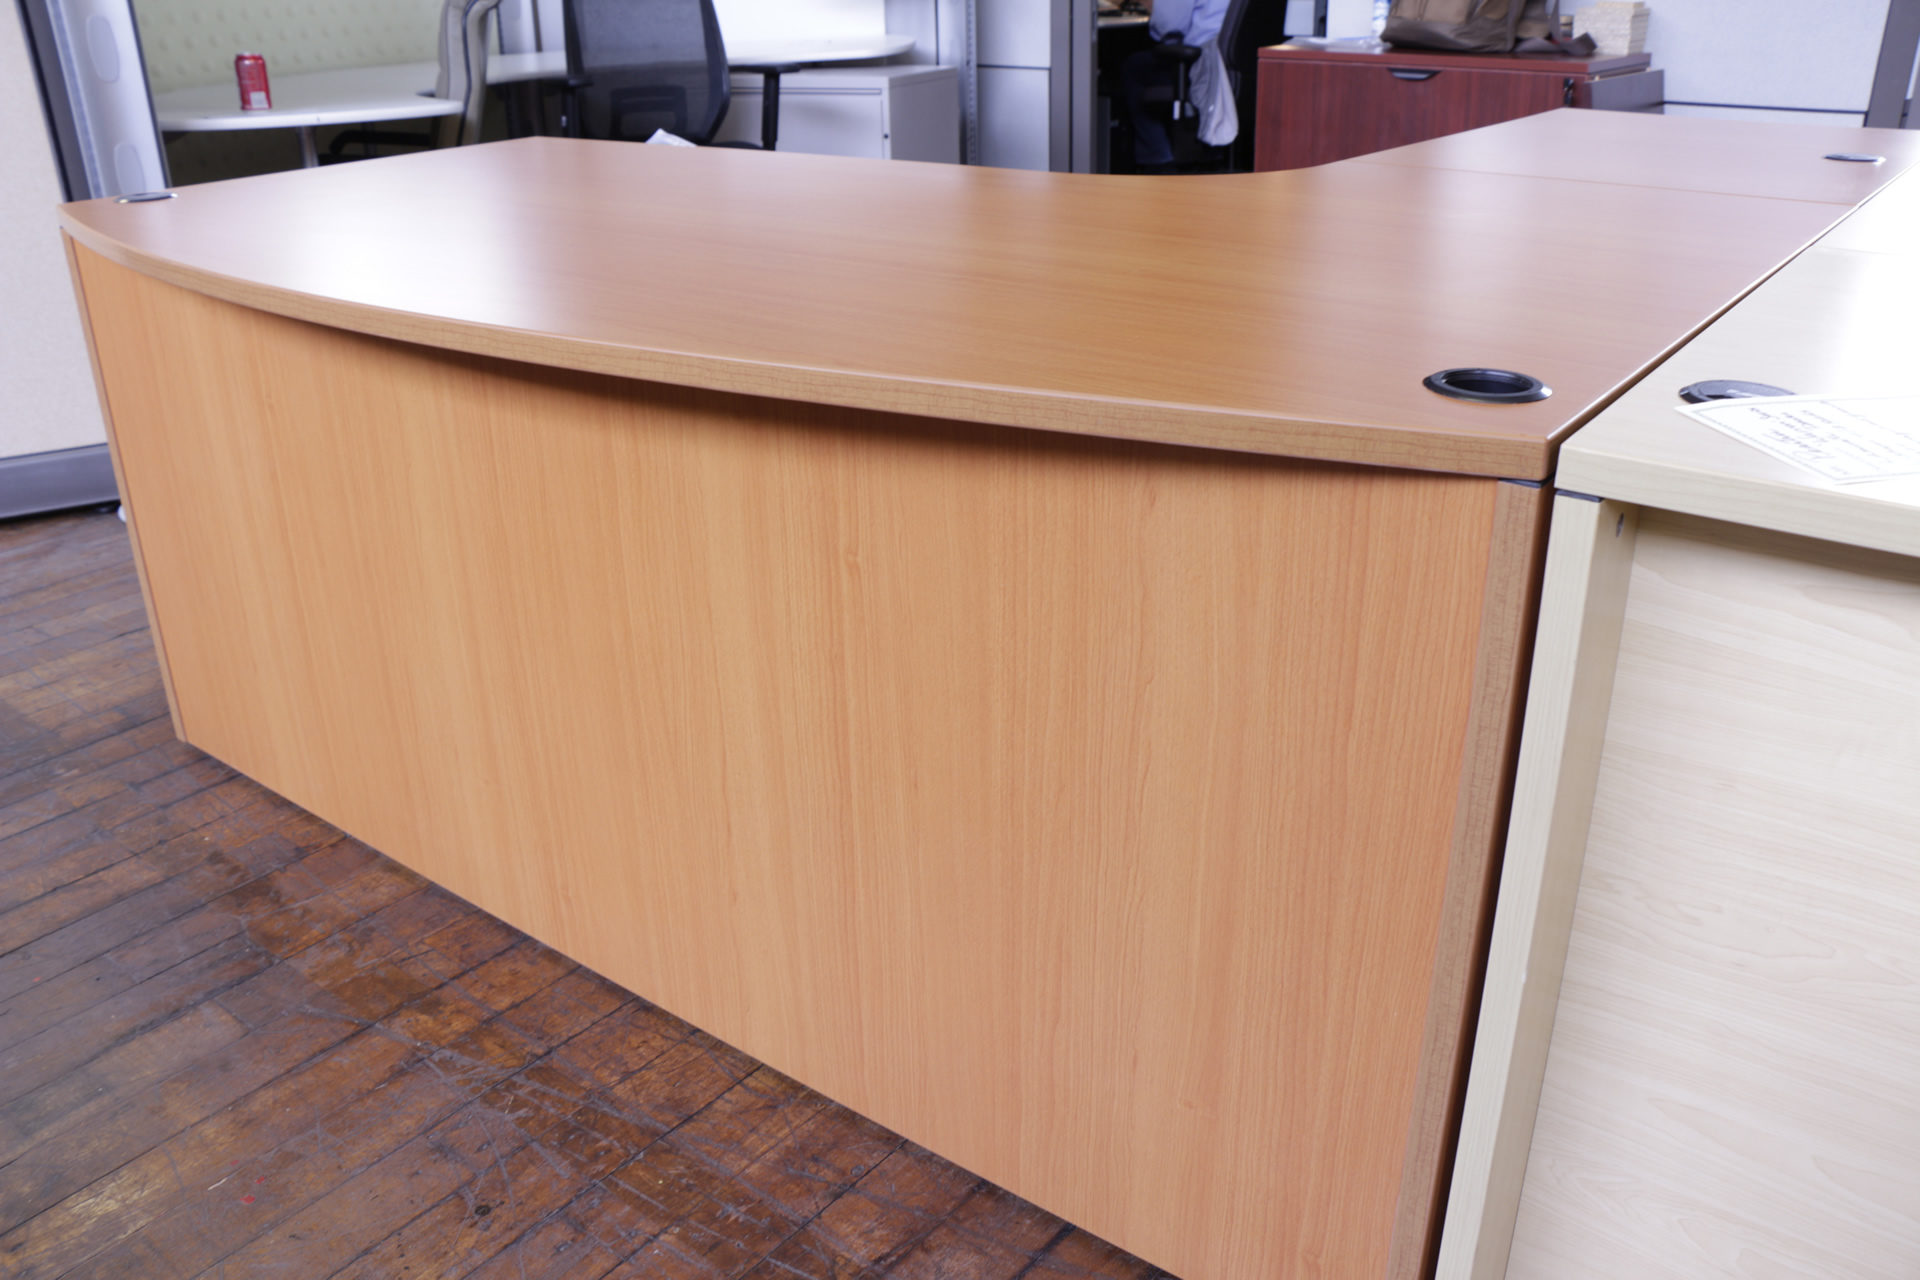 peartreeofficefurniture_peartreeofficefurniture_mg_1459.jpg